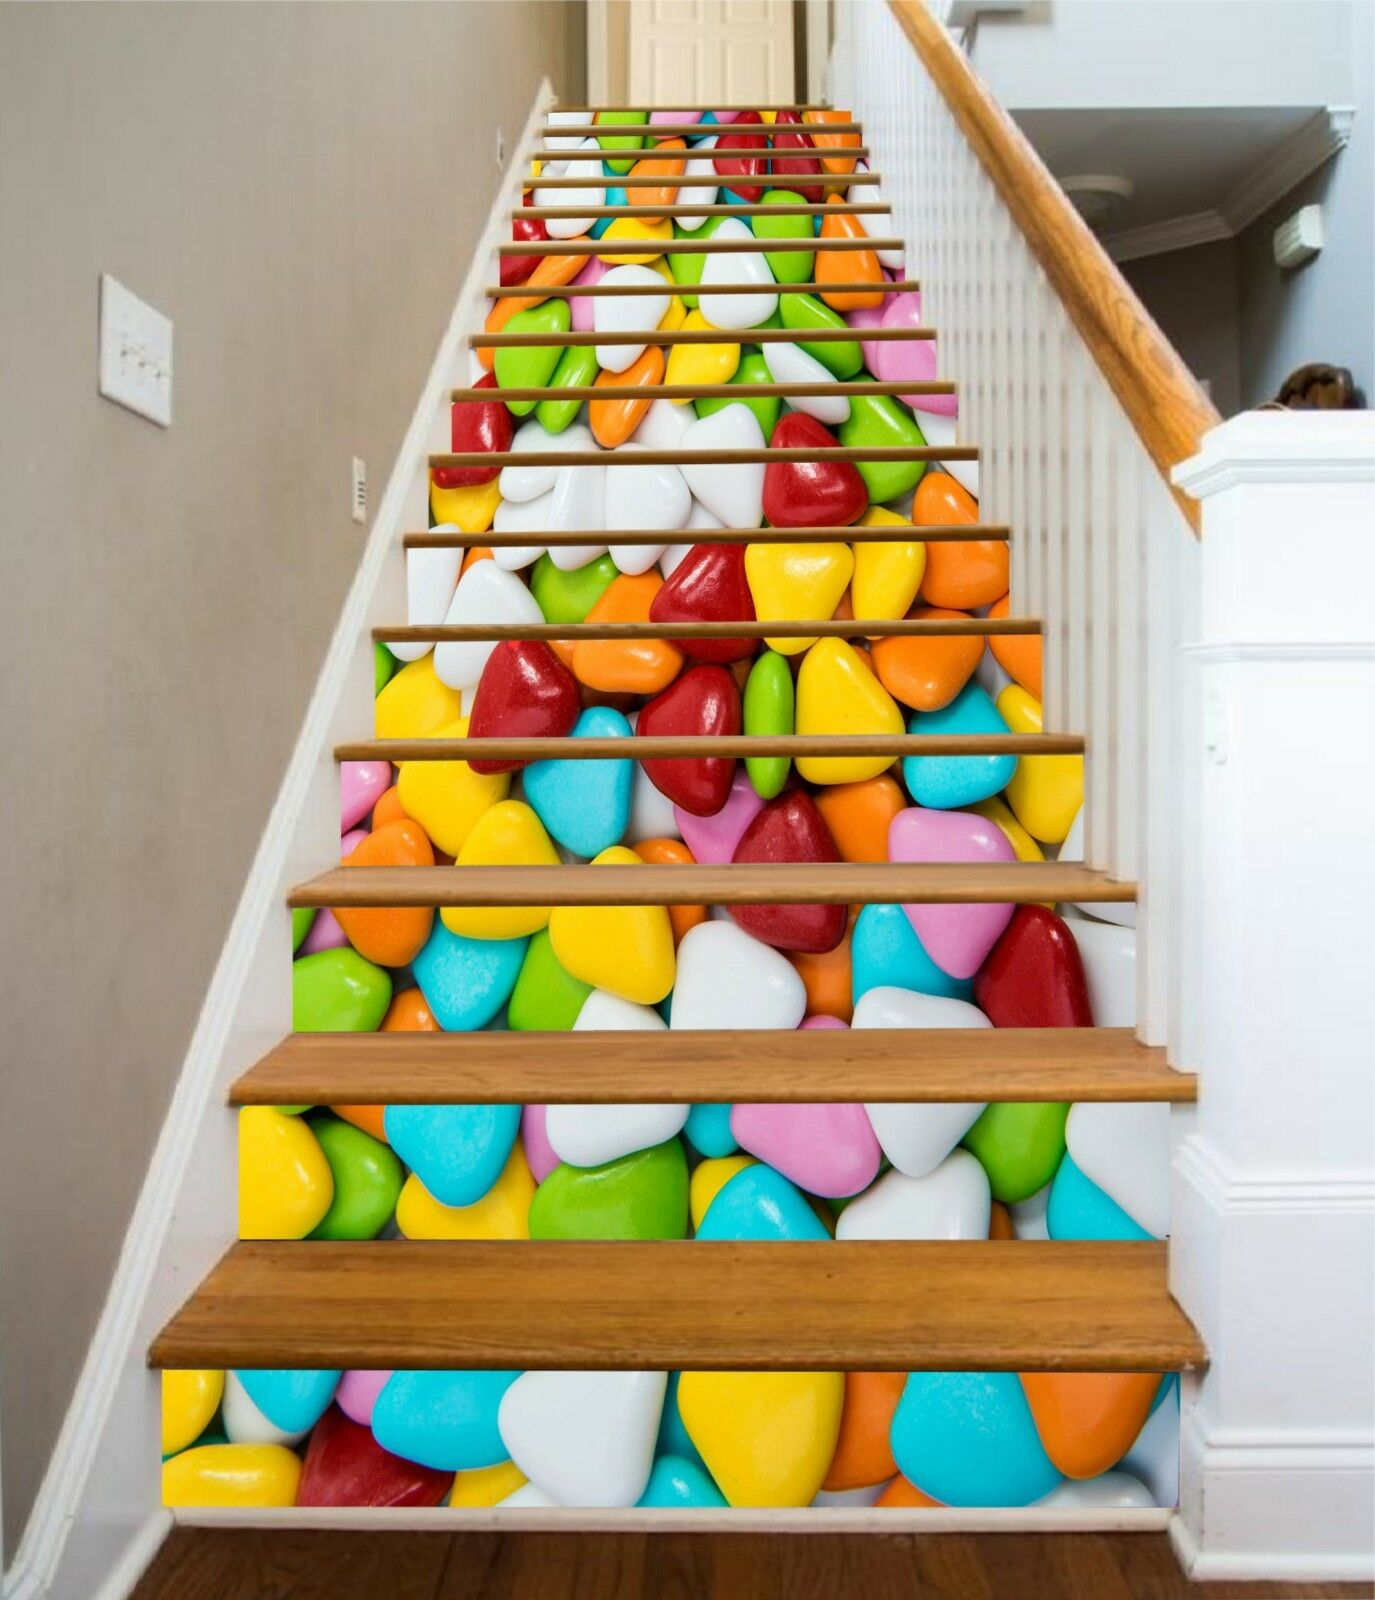 3D Candy Couleuruge 4 Stair Risers Decoration Photo Mural Vinyl Decal Wallpaper CA